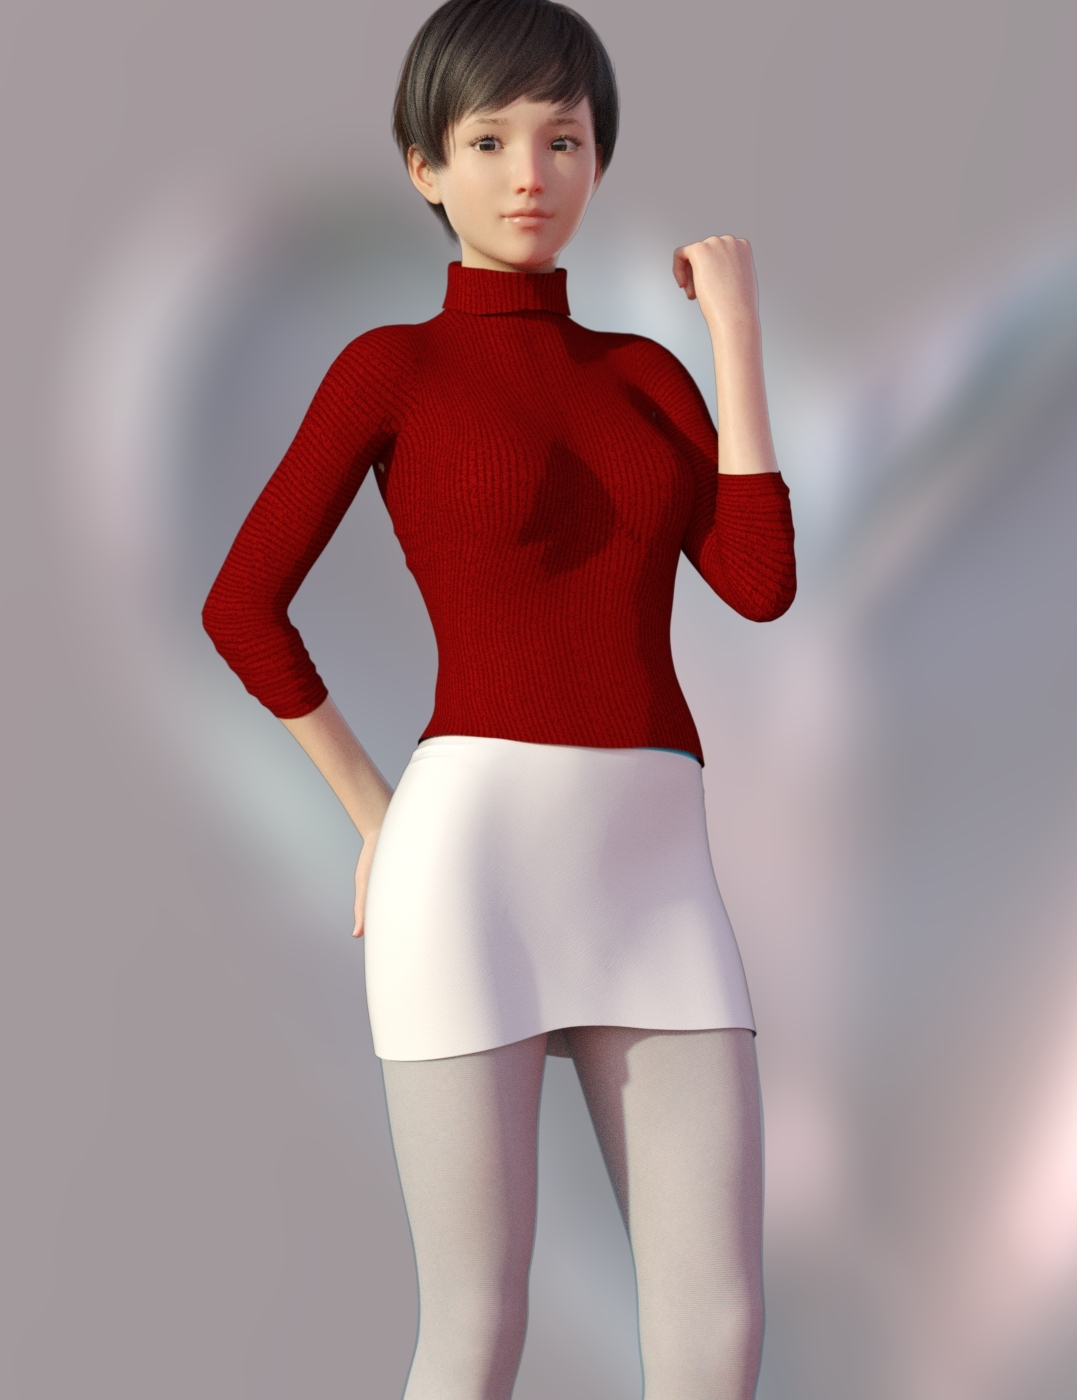 G8F in Hot Sweater for Genesis 8 Females for dForc